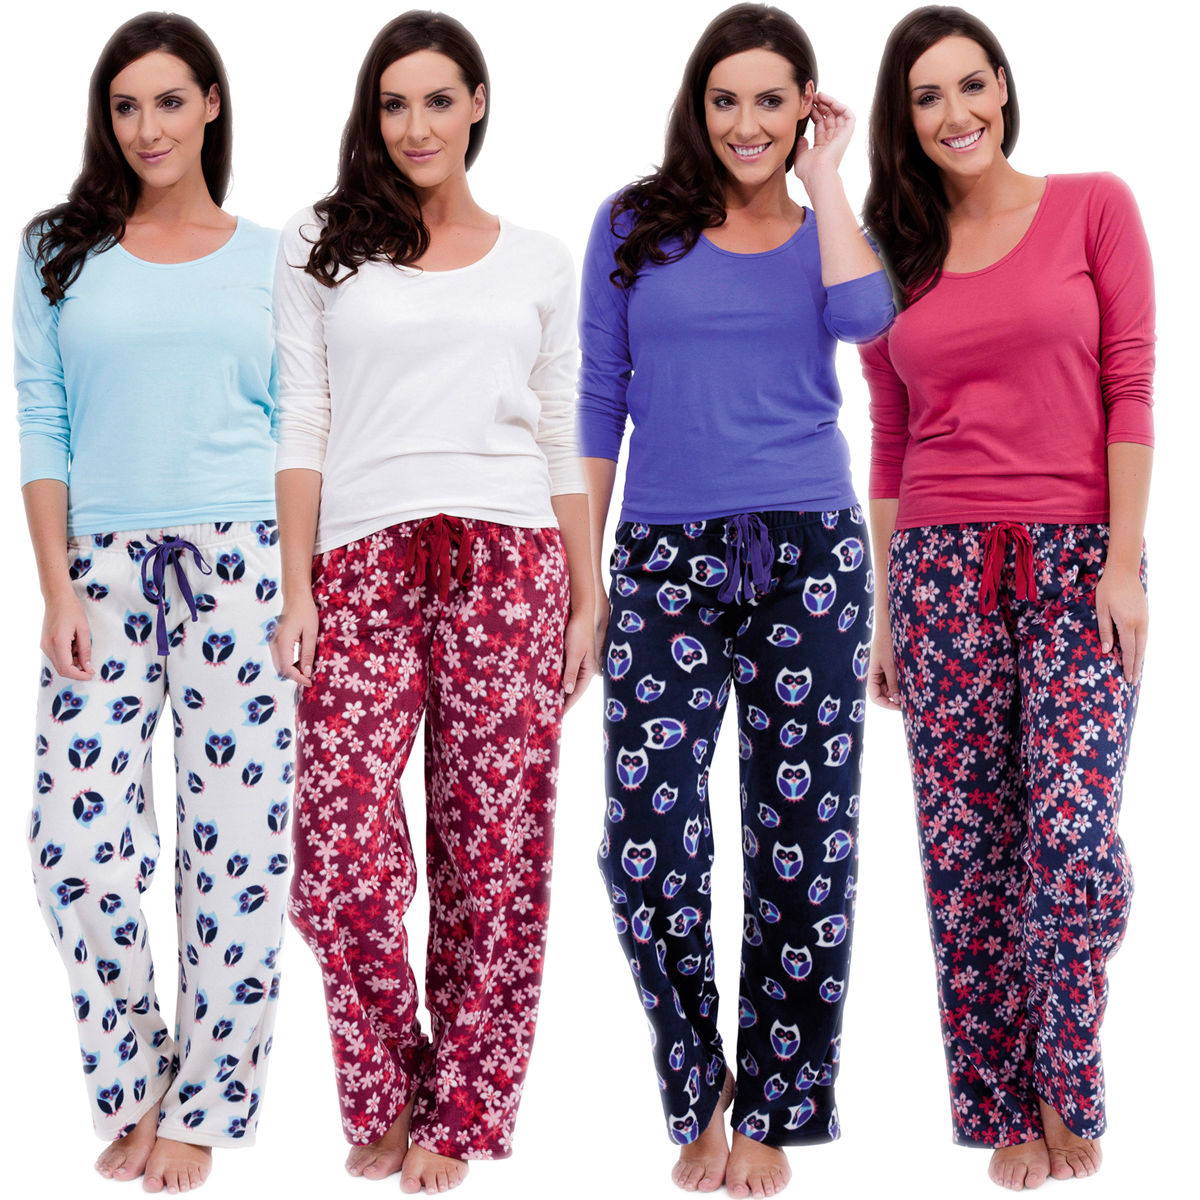 Pyjama Sets - Buy latest Pyjama Sets for women online in India. Explore a wide range of Nightwear Pyjama Sets in various colours and patterns on Zivame.